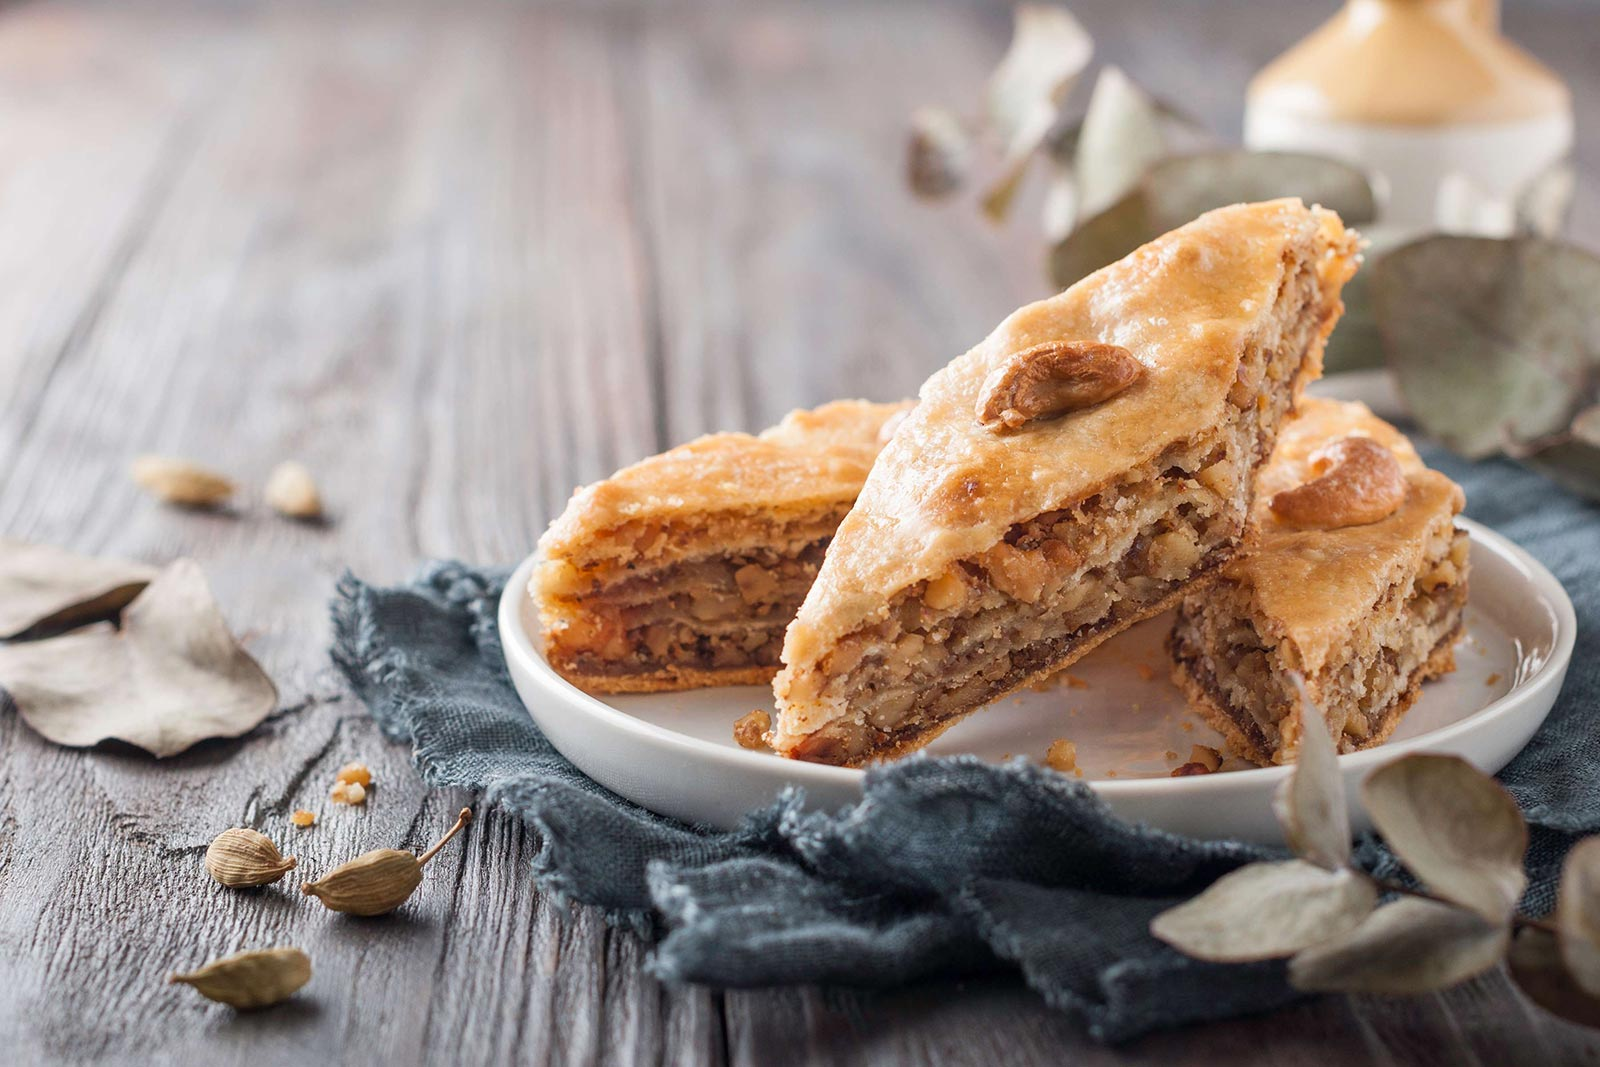 Image for Ever tried the Middle Eastern baklava?